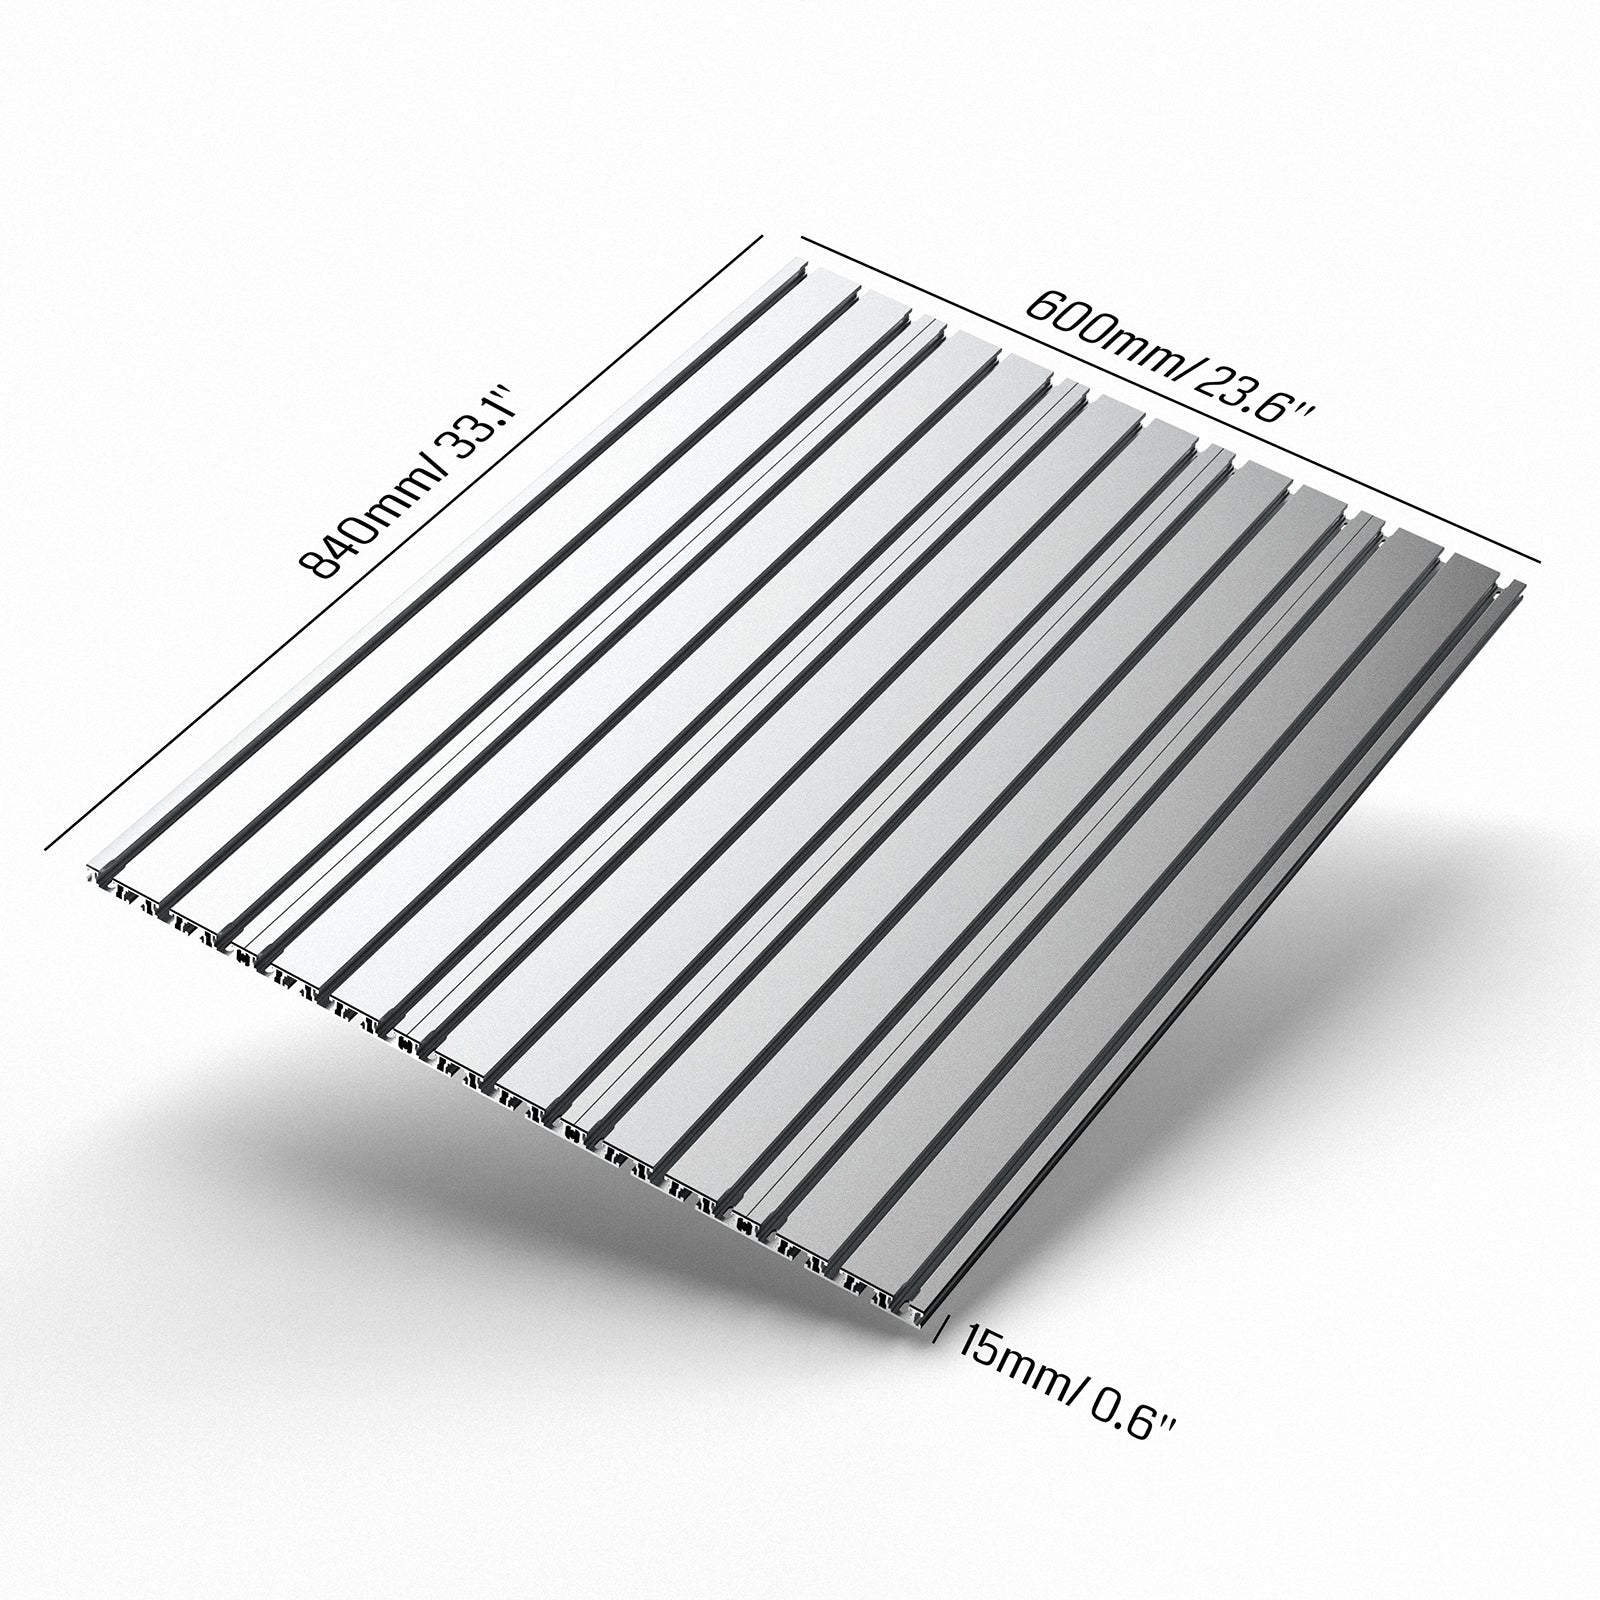 Genmitsu  6060 T-Slot Table Aluminum Spoilboard with Dust Baffle for PROVerXL 4030 XY-Axis Extension Kit | SainSmart